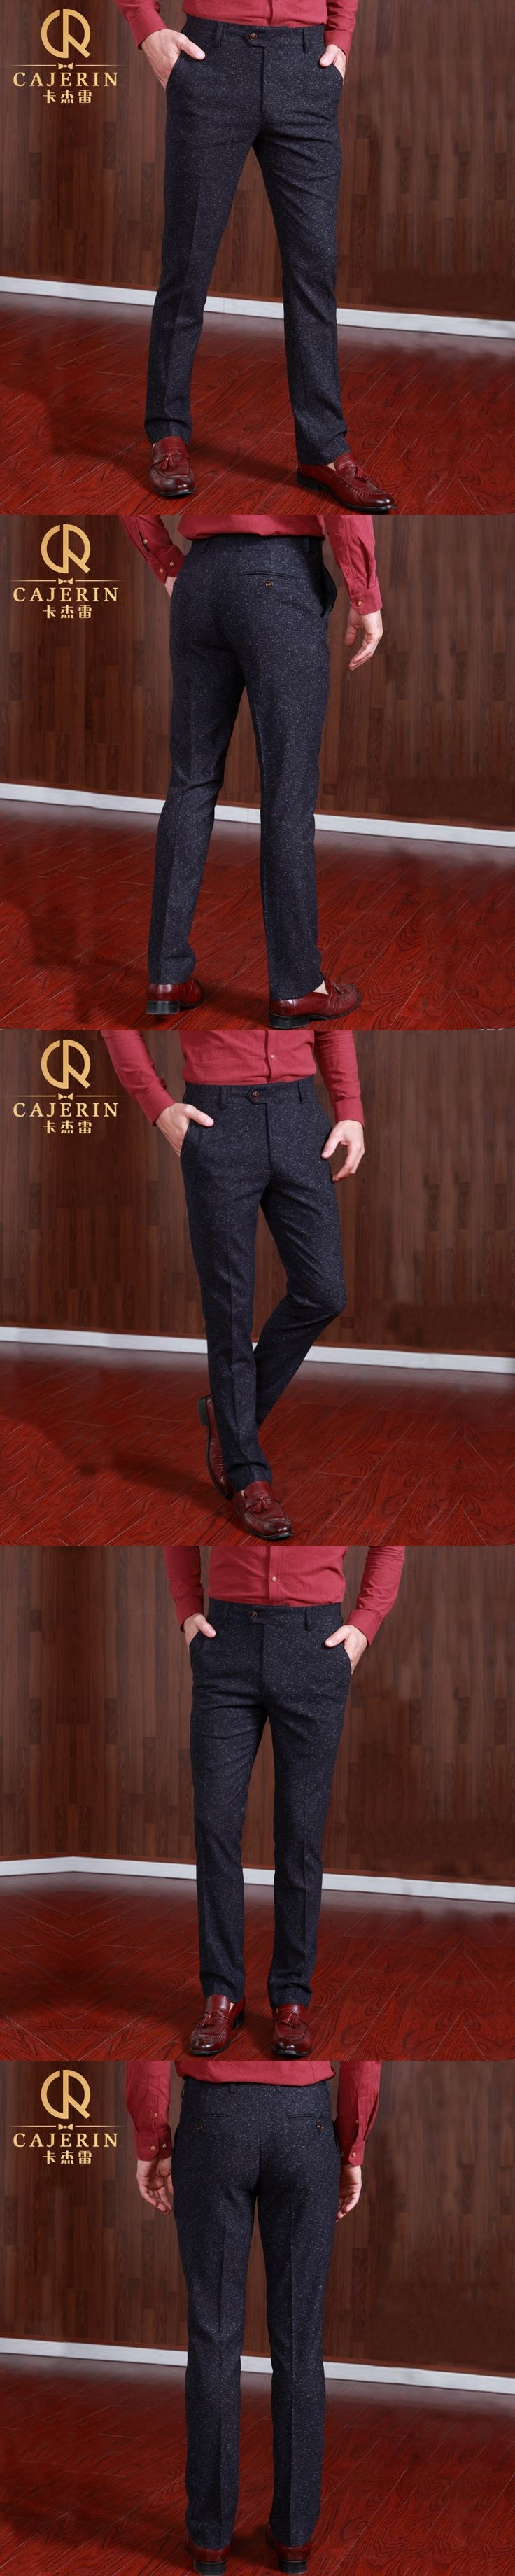 Pre Sale Mens Dress Pants Formal Business Suit Slim Trousers Men Suits Pant Winter Thicken Casual Wedding Groom Trouser